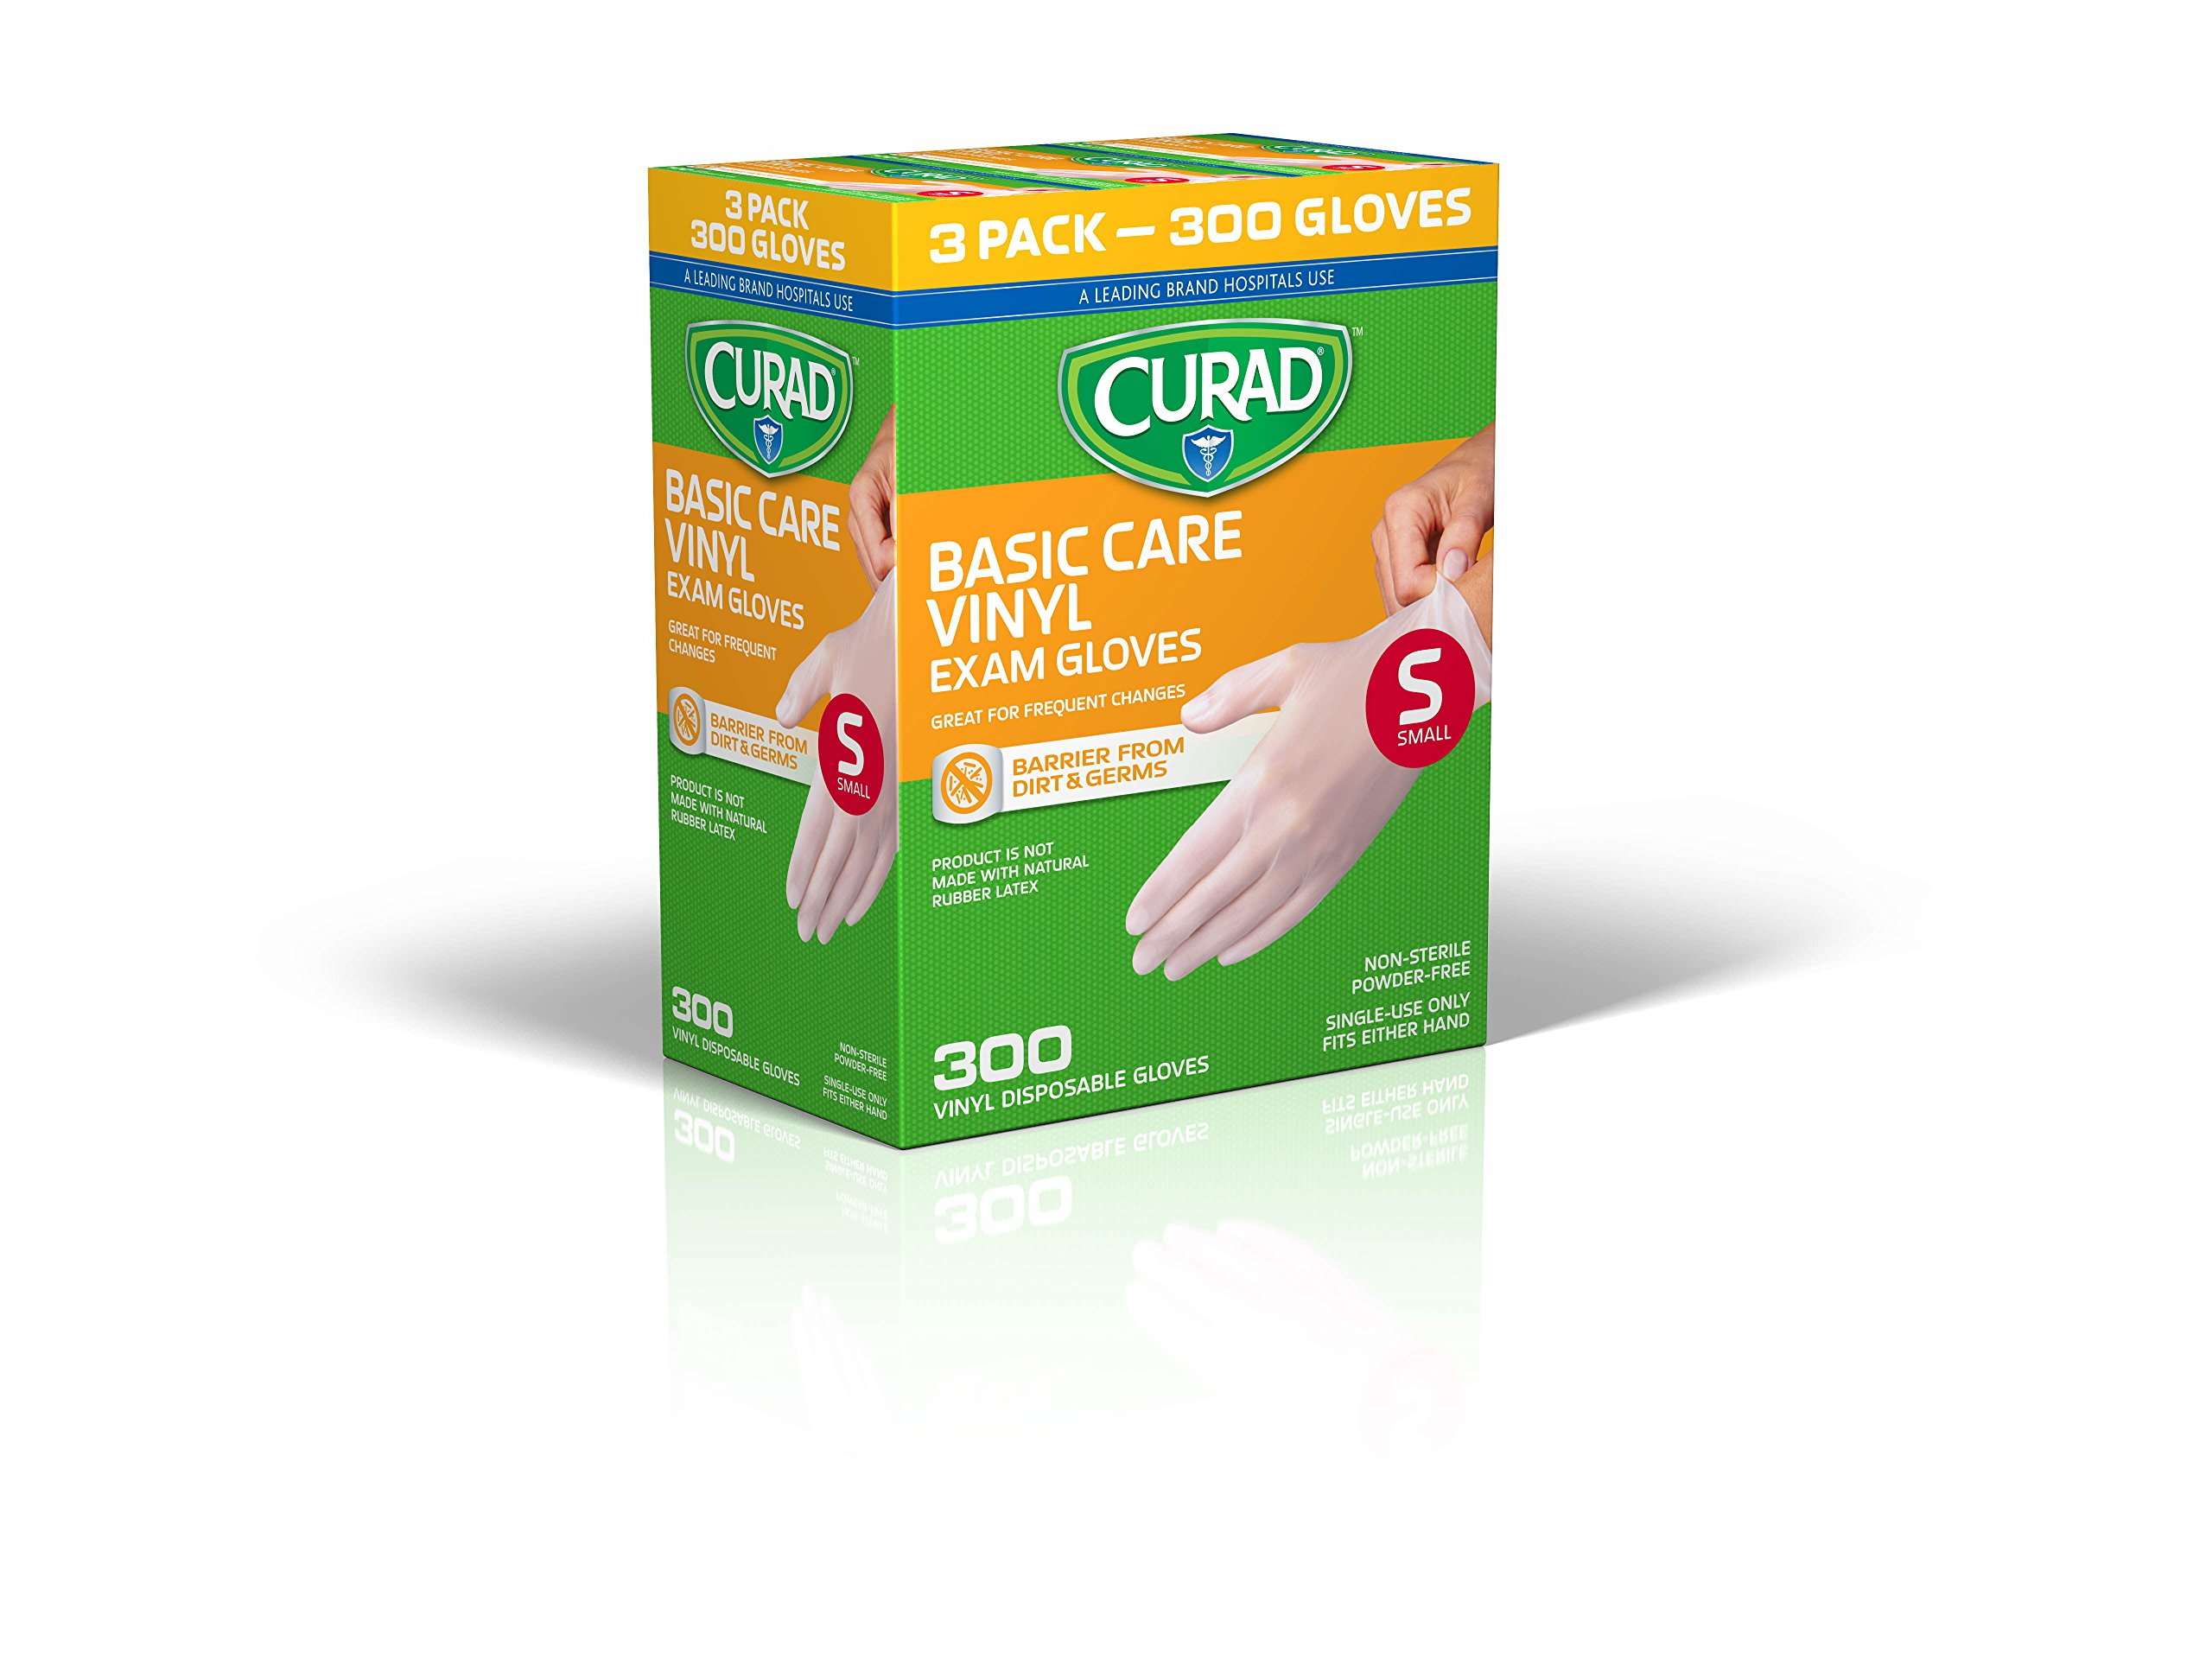 CURAD Basic Care Vinyl Disposable Exam Gloves, Small (Pack of 300)